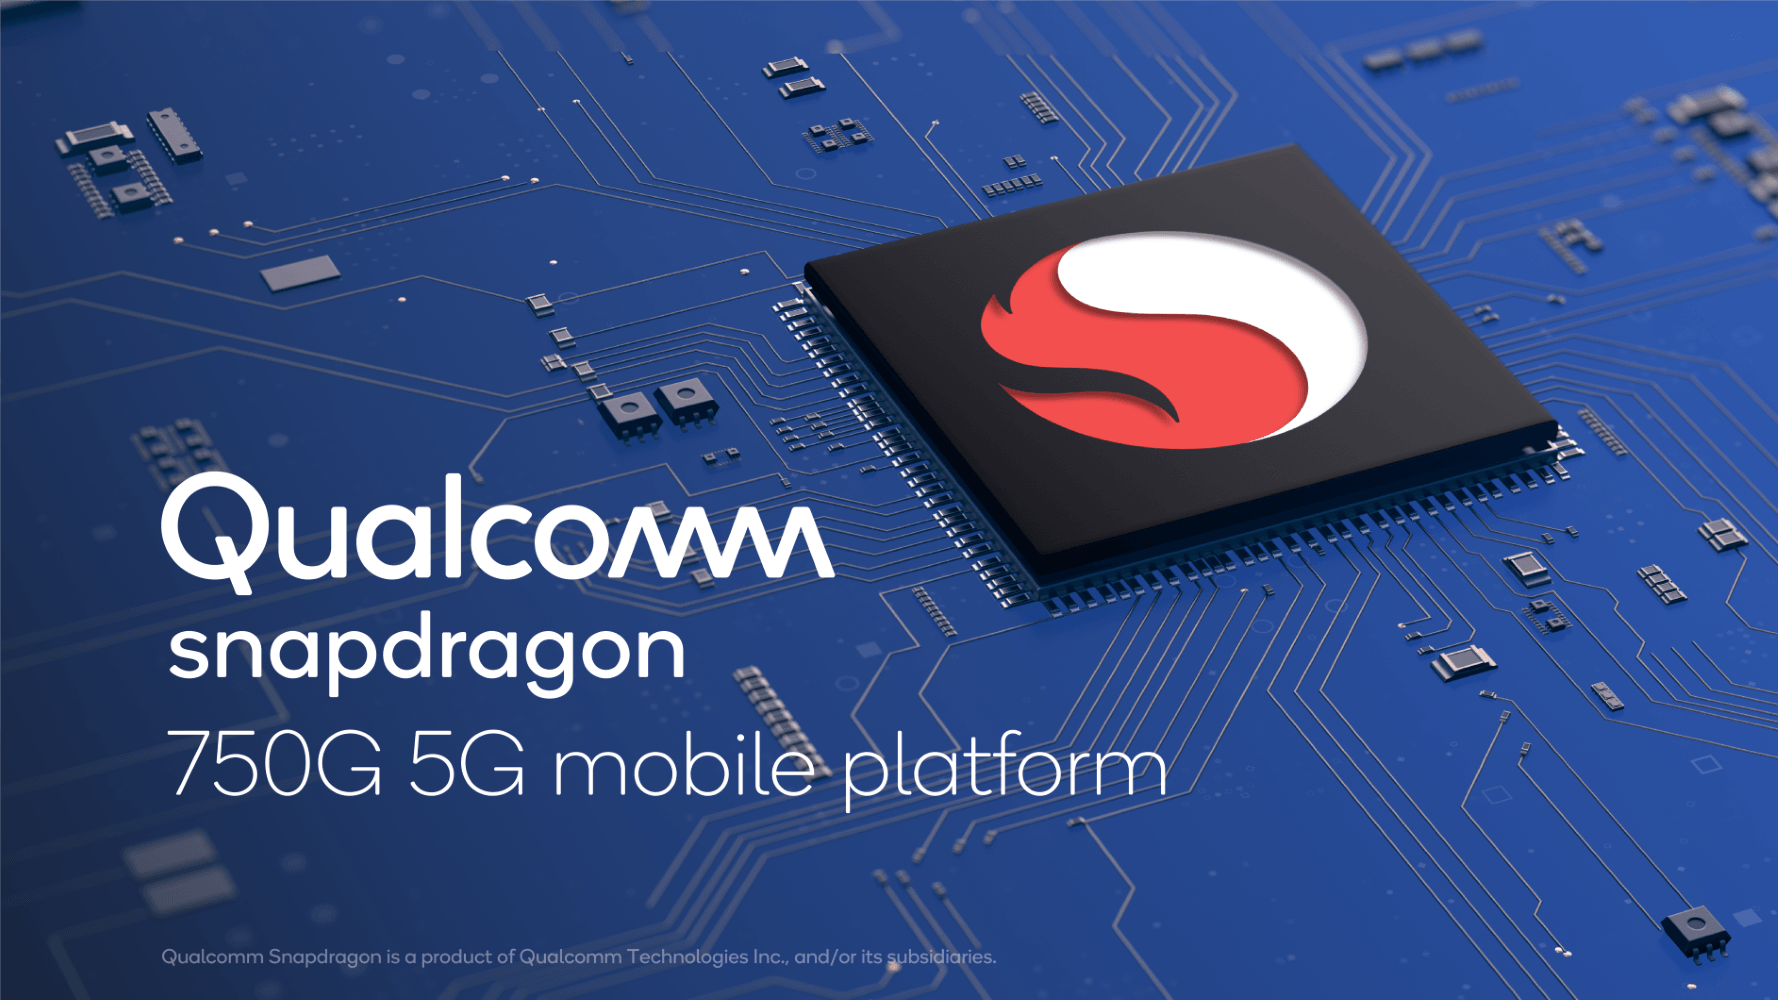 small_qualcomm_snapdragon_750g_5g_mobile_platform_graphic